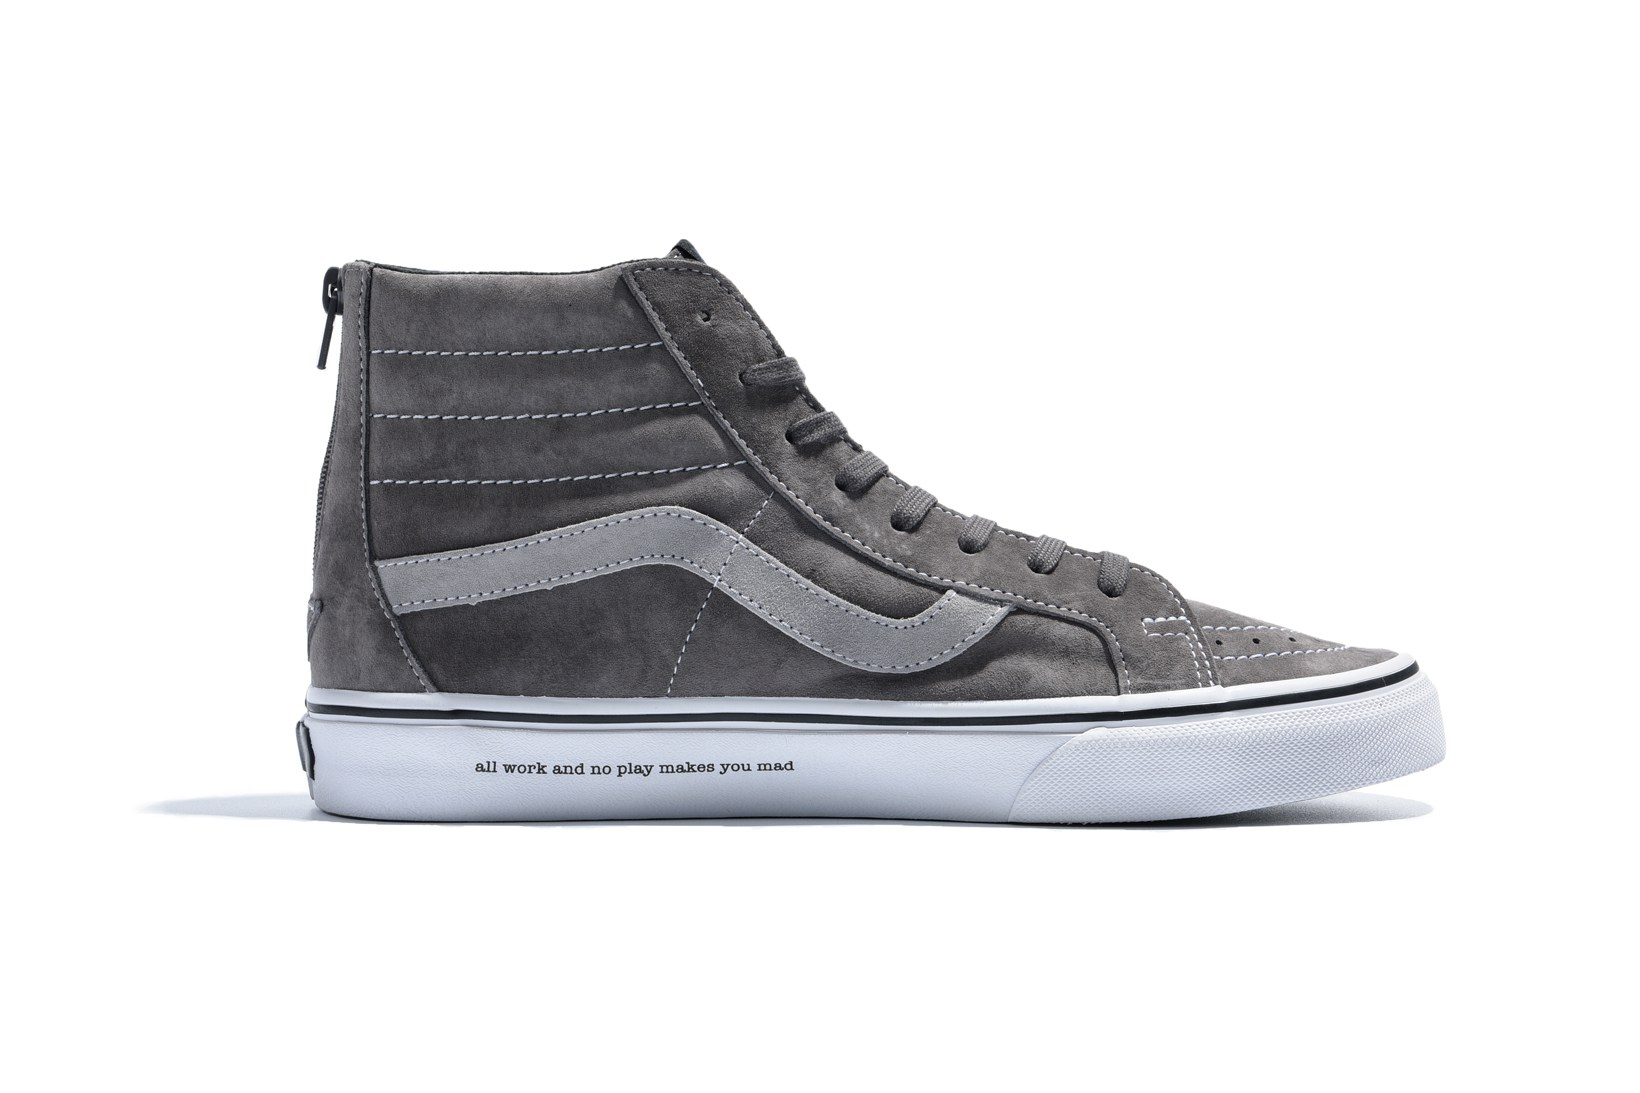 vans-madness-collection-10